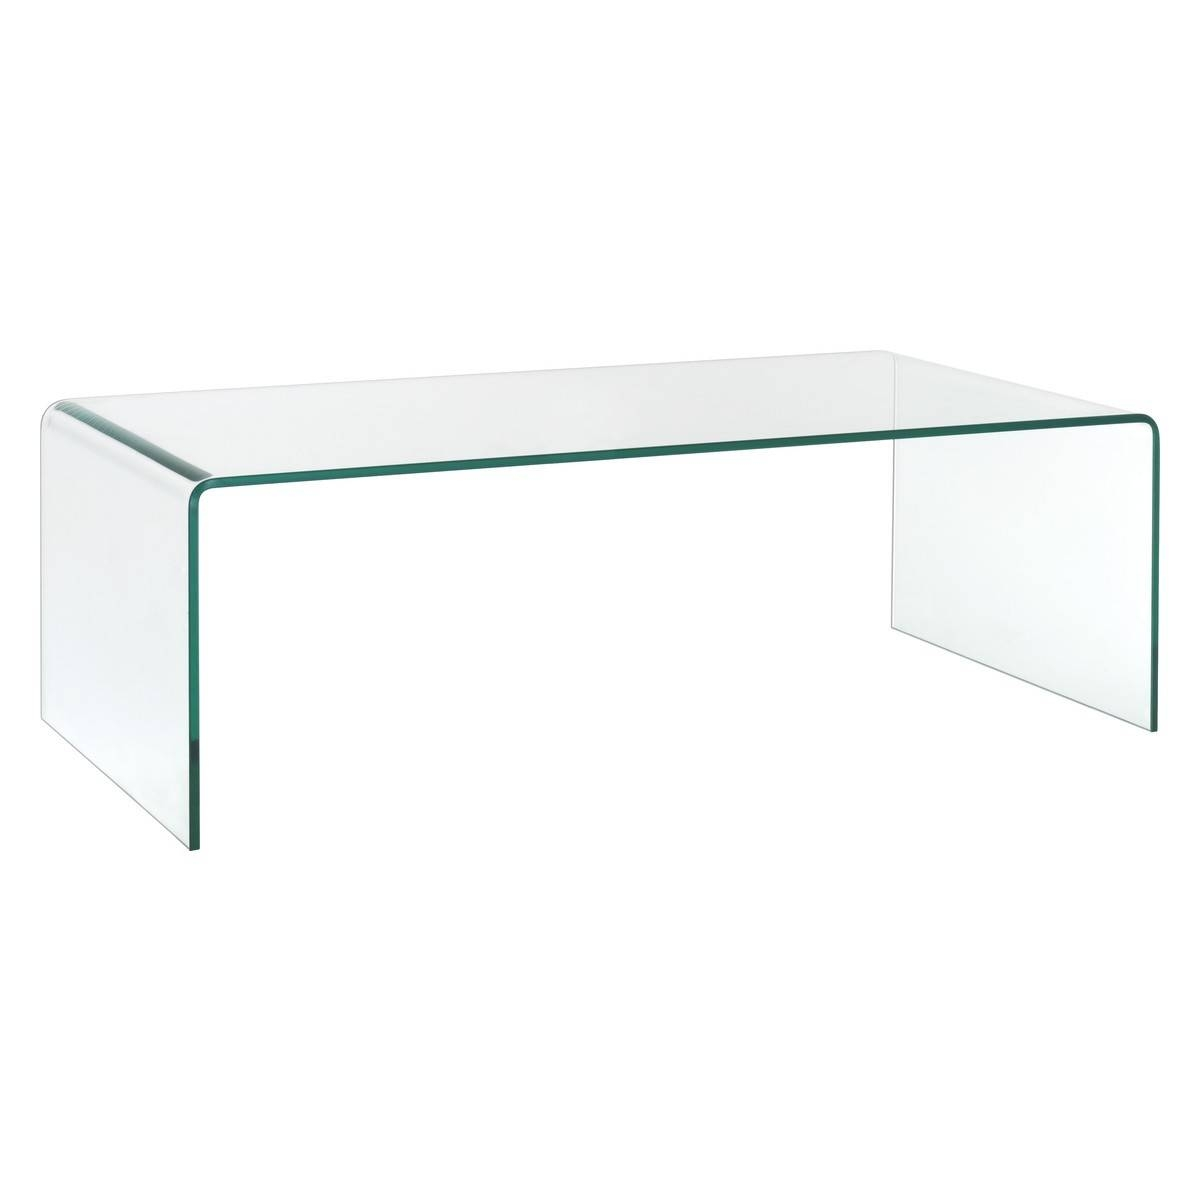 Coffee Tables; Modern Glass & Oak With Storage - Habitat with regard to White and Glass Coffee Tables (Image 11 of 30)